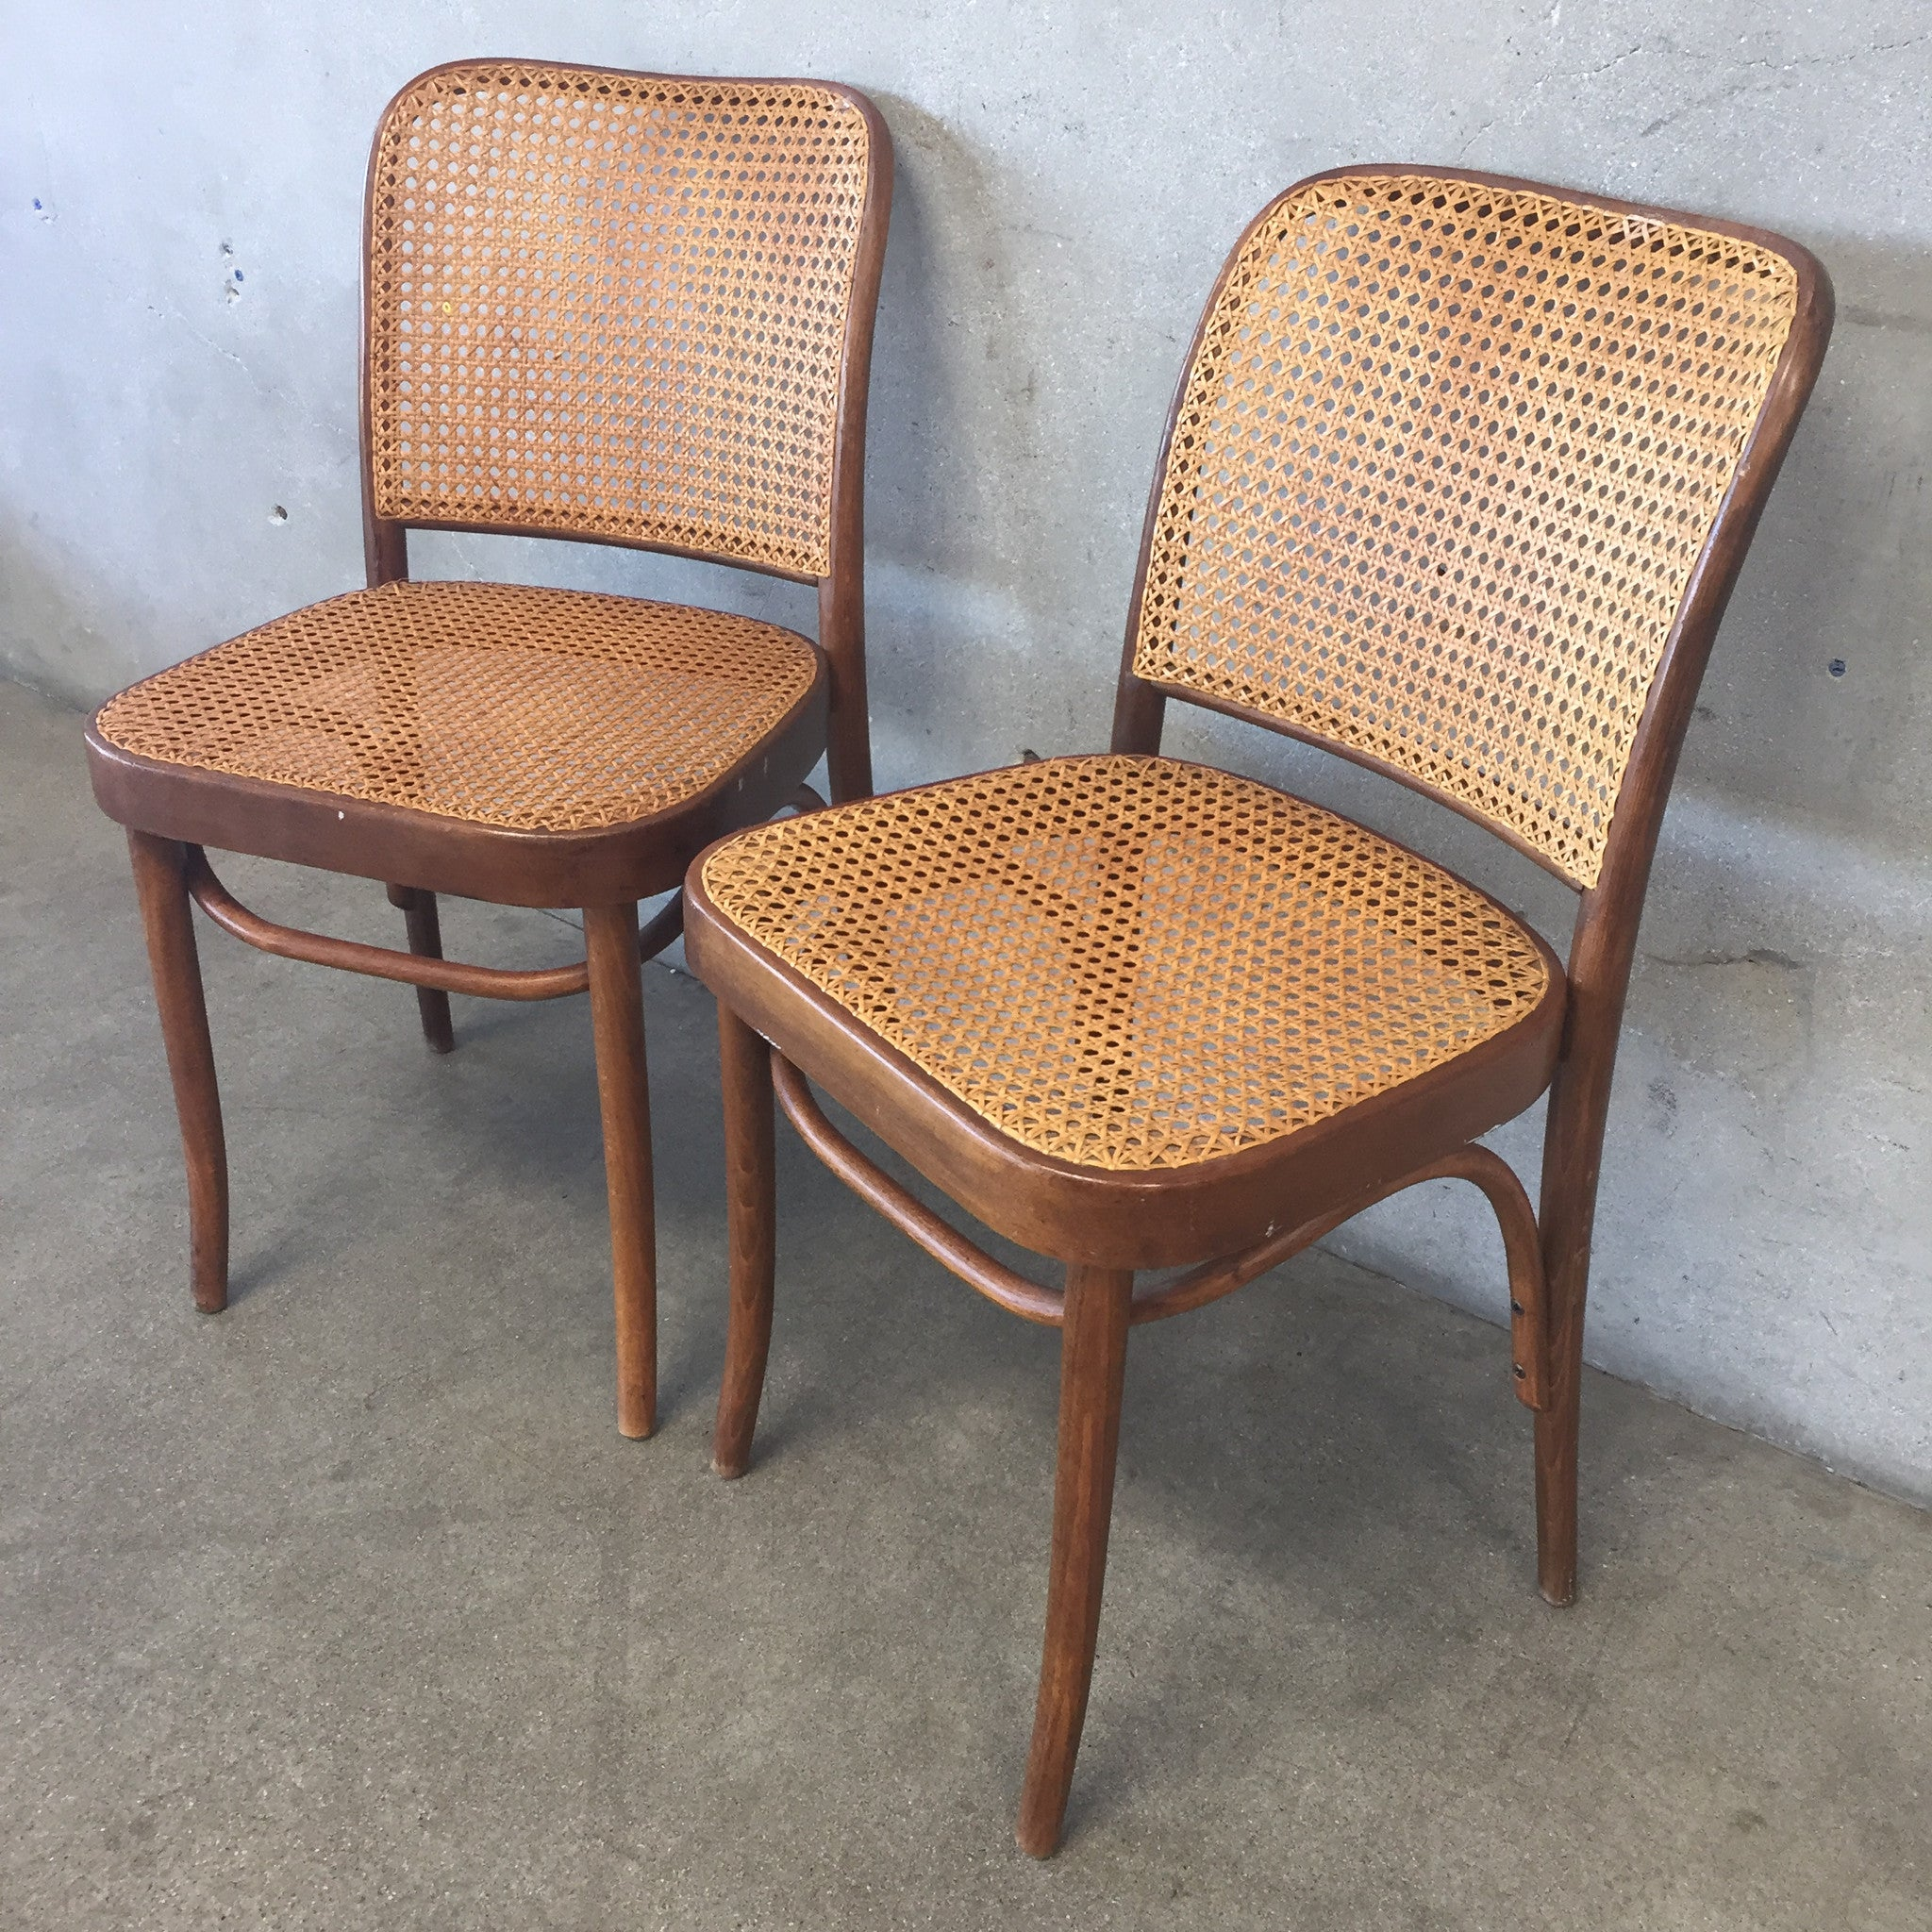 Pair of Vintage Thonet Style Cane Dining Chairs – UrbanAmericana